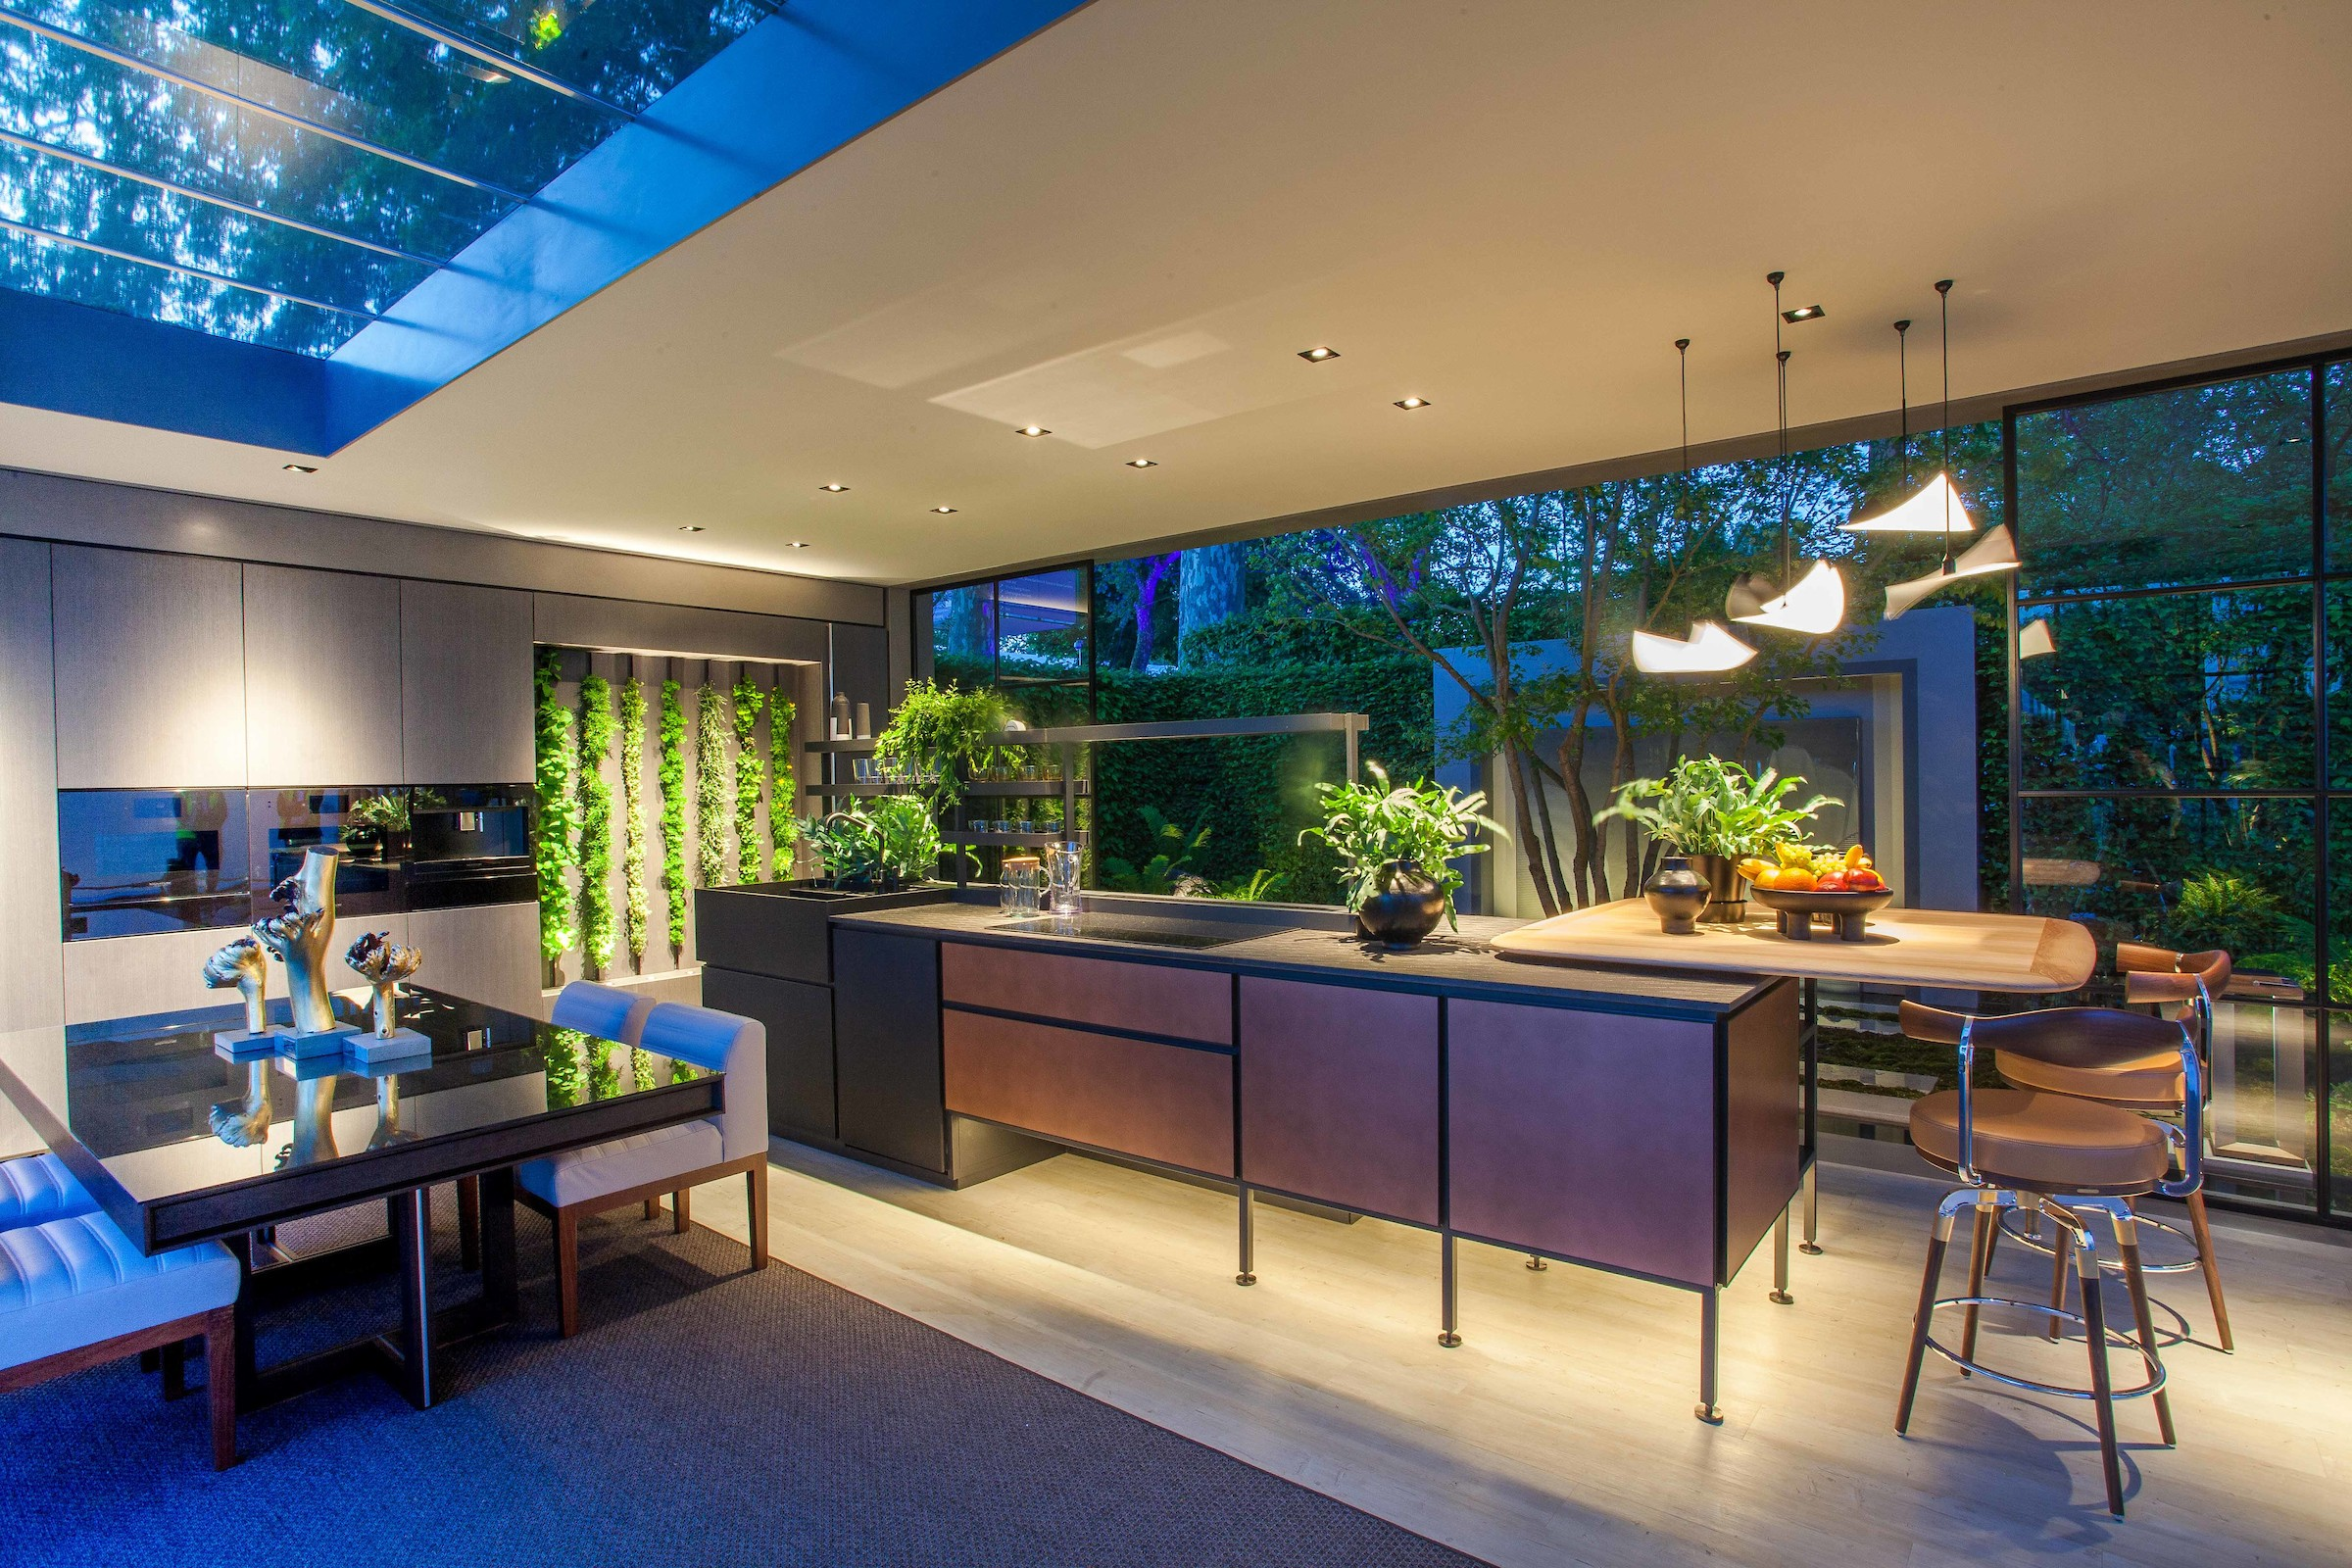 An inside view of LG Eco-City Garden with furniture, flowers and home appliances